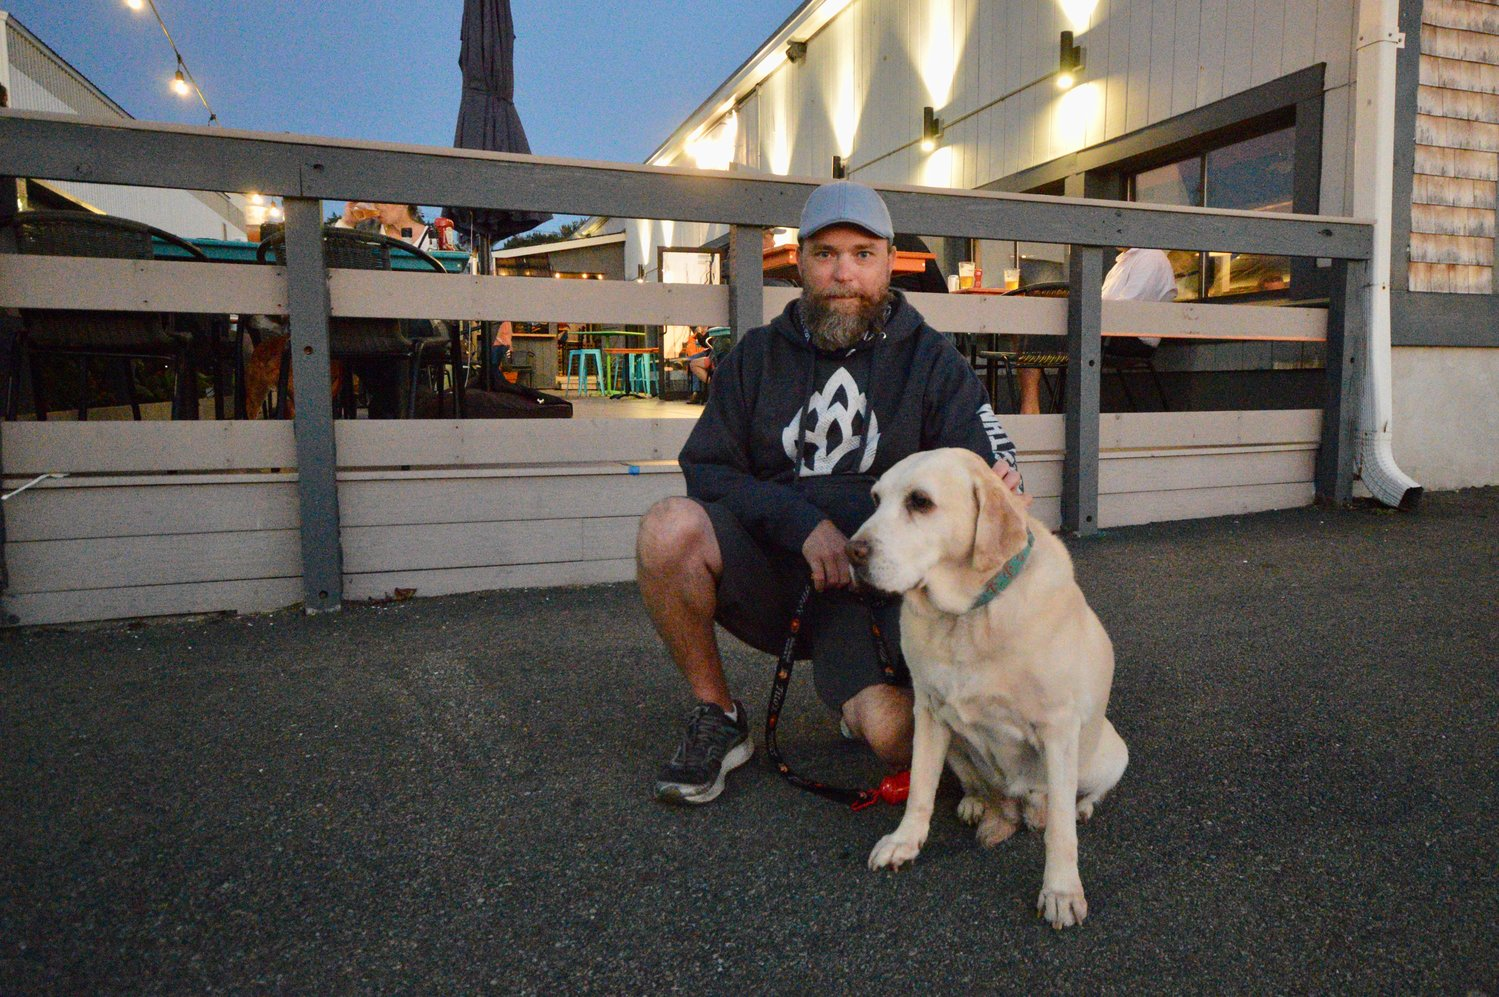 Joe Murphy, one of the three partners at the Gulf Stream Bar & Grille, with Honey, a 12-year-old Lab who acts as the restaurant's mascot. Patrons are invited to bring their dogs onto the outside deck in the background.